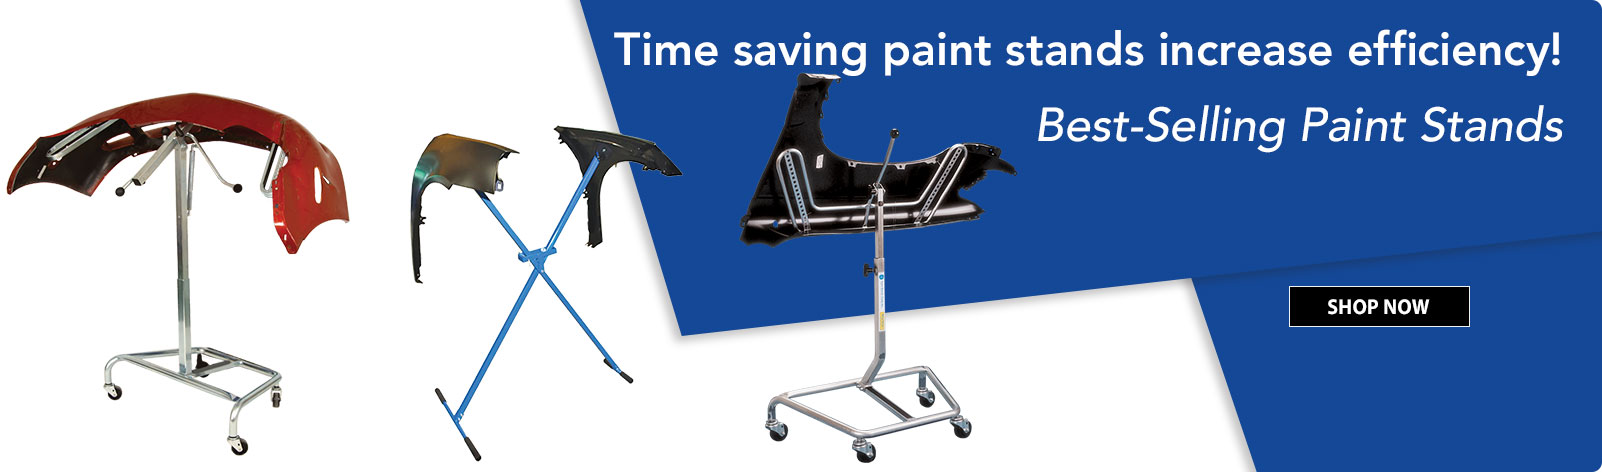 Paint Stands